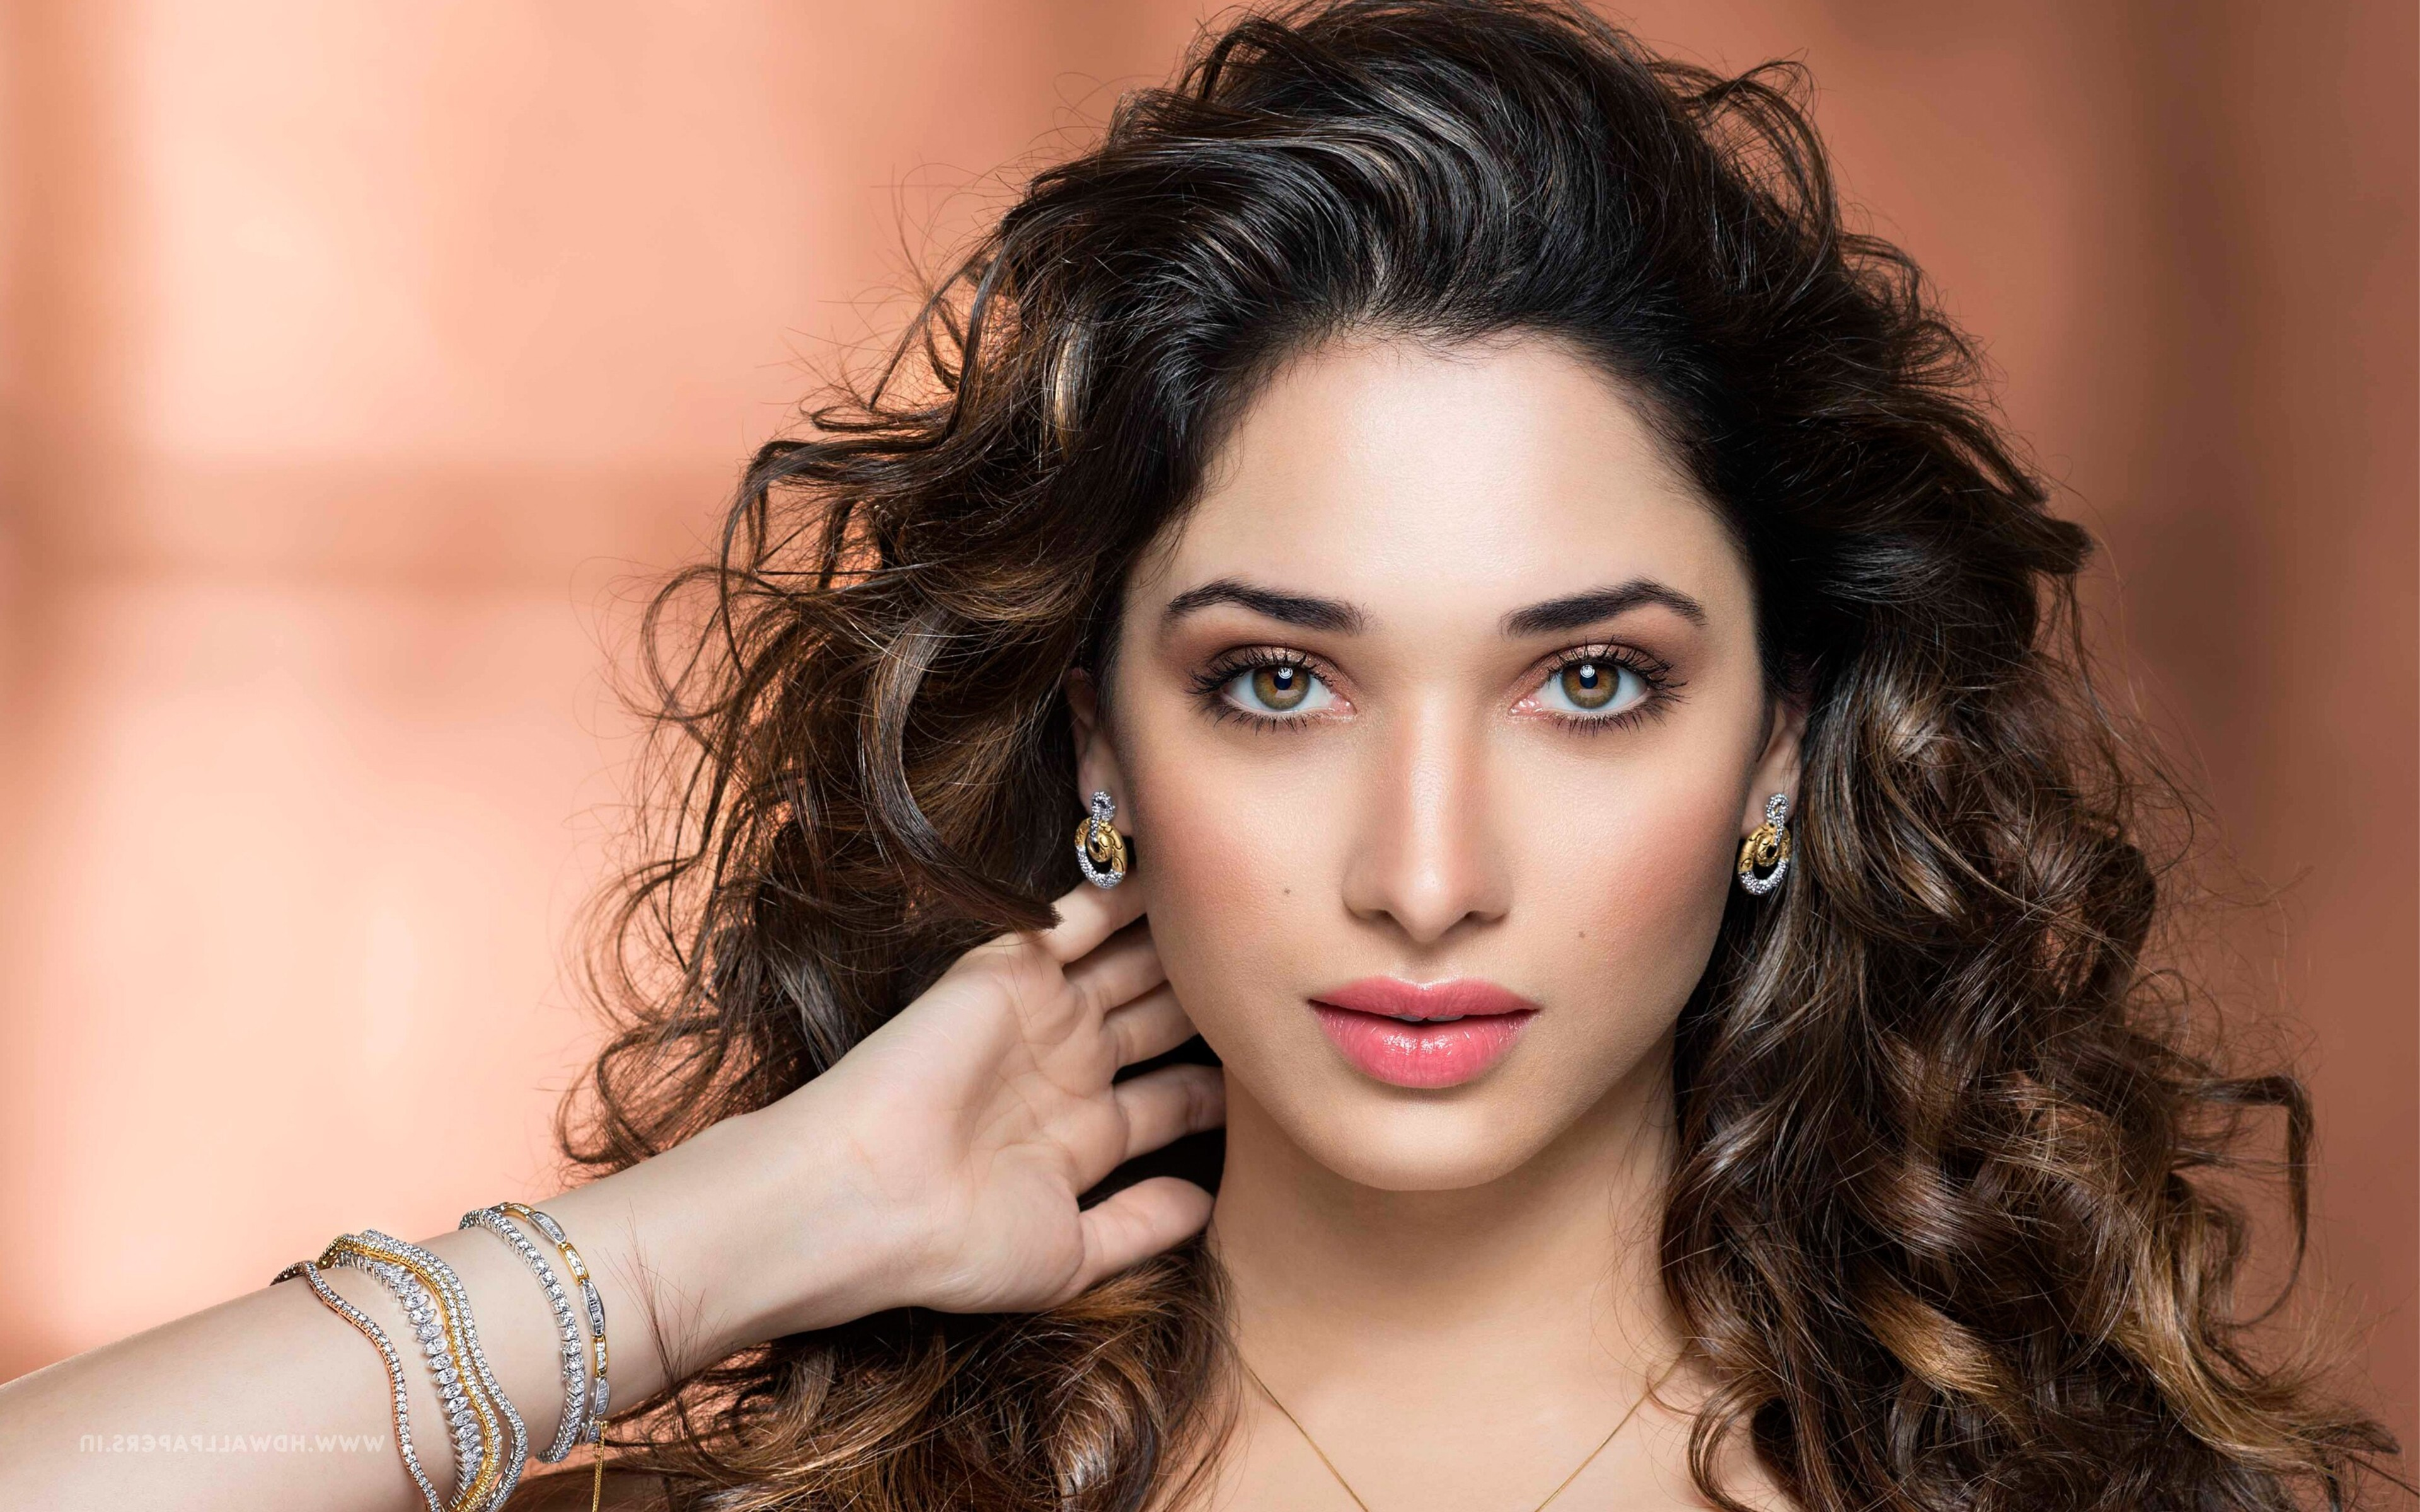 3840X2400 Tamanna 4K Hd 4K Wallpapers, Images, Backgrounds -9737